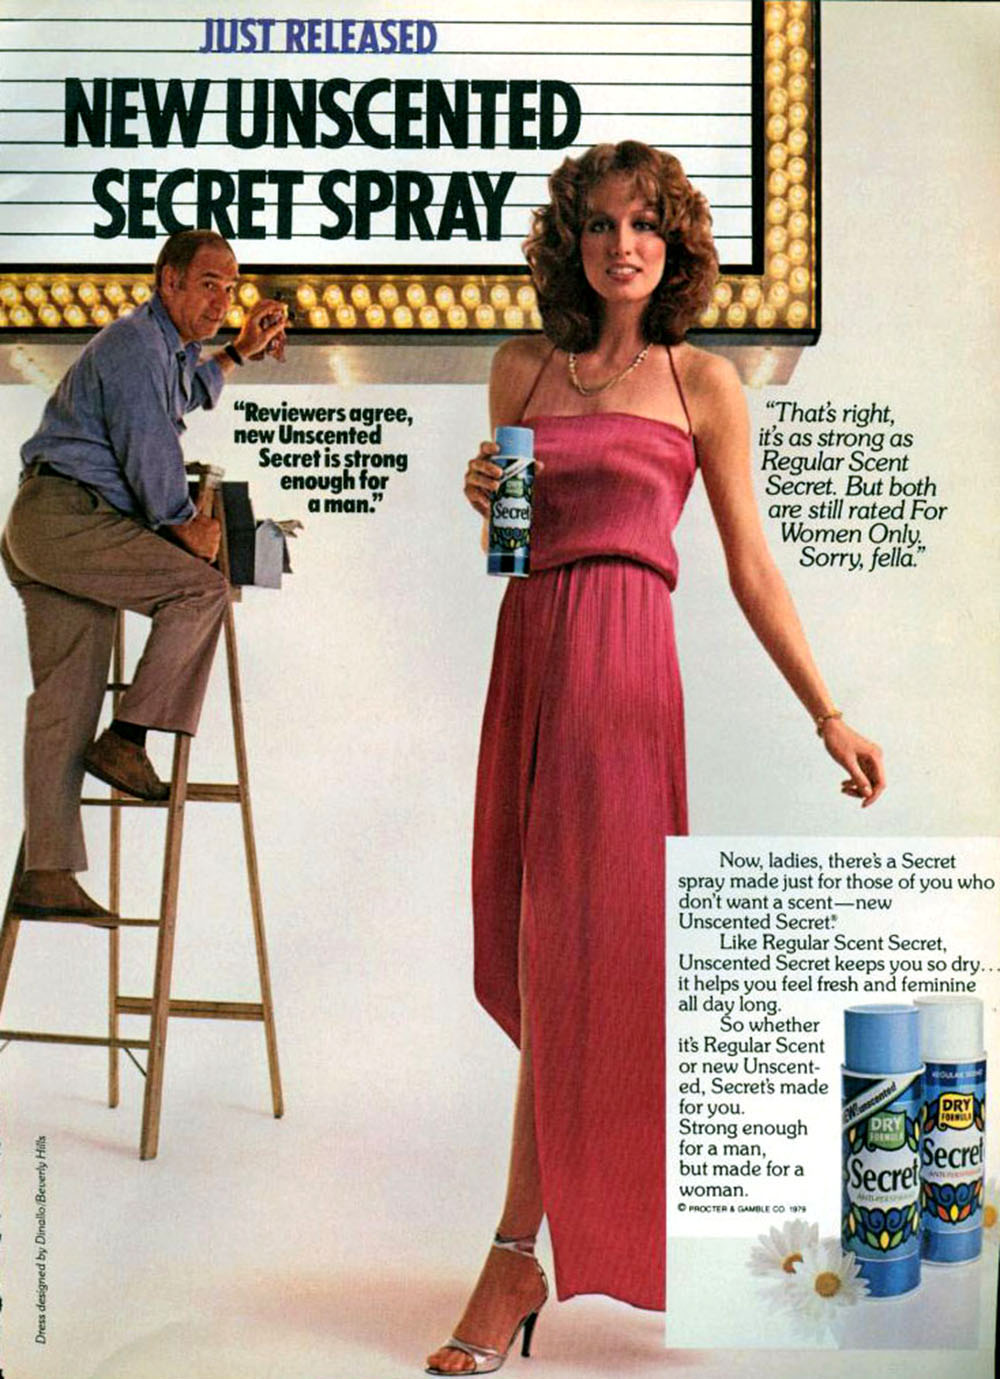 37 New Unscented Secret Spray Advertisement Flashbak